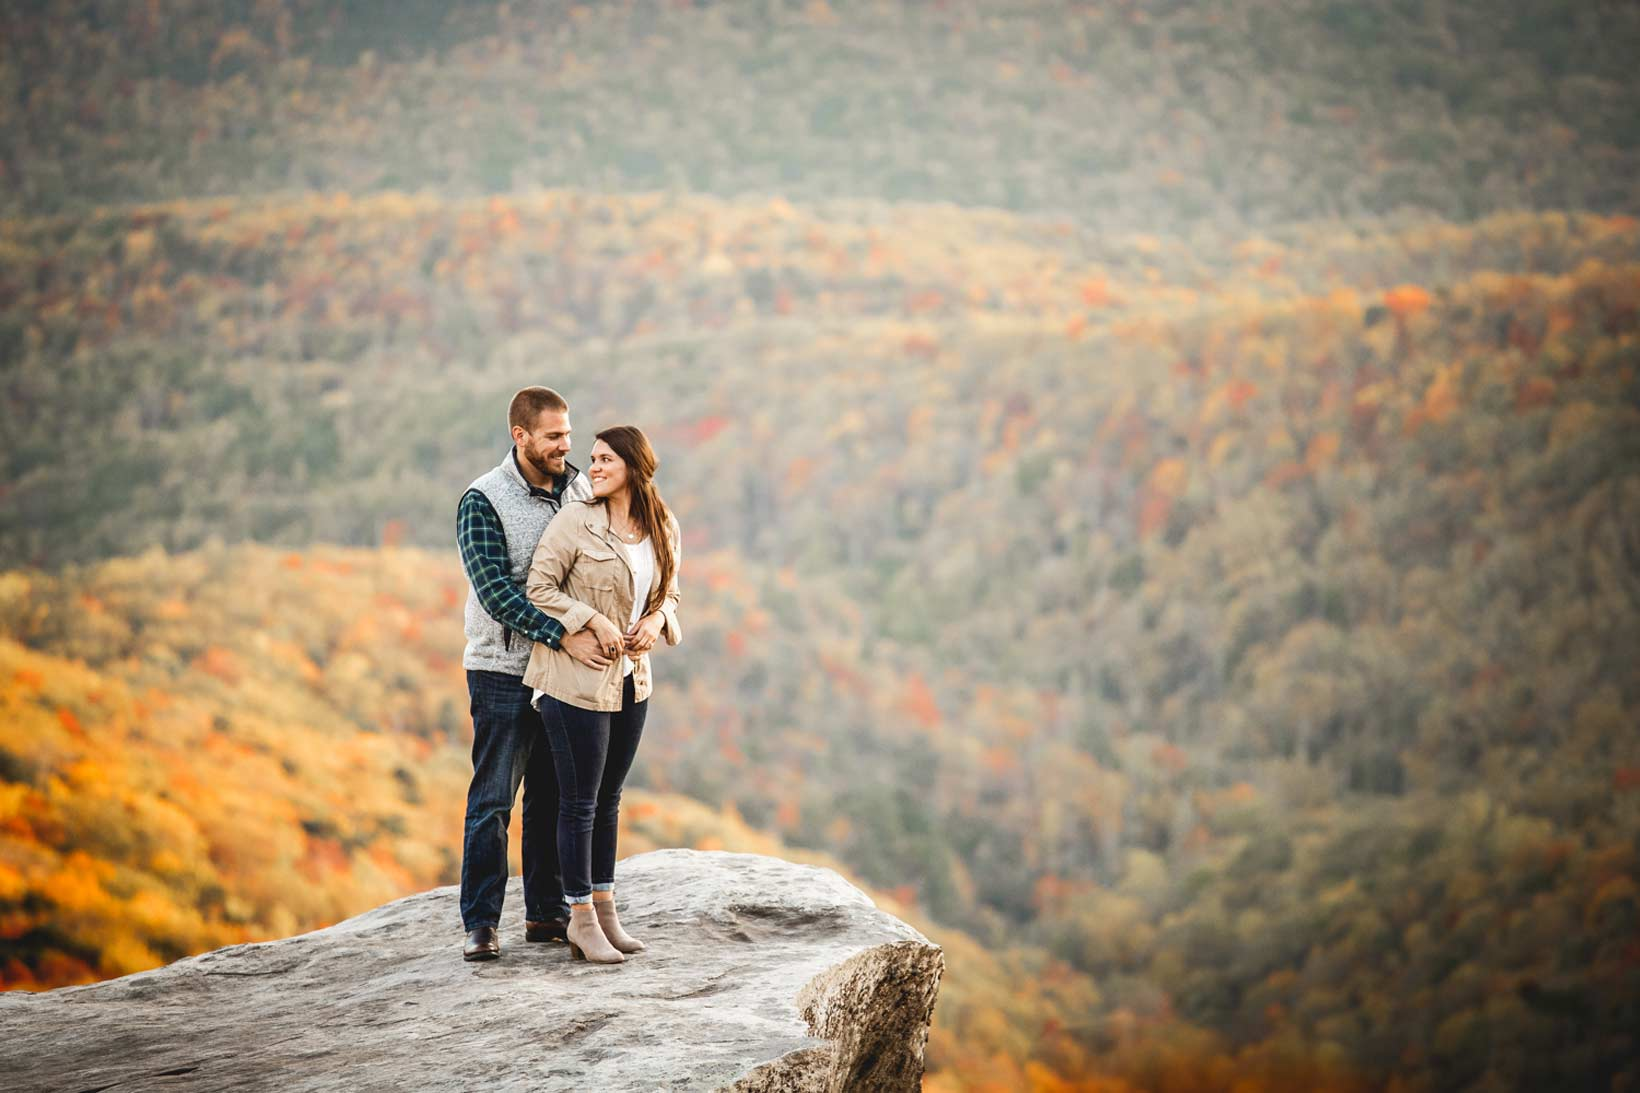 Engagement session photo taken on top of North Carolina's Rough Ridge located along side the Blue Ridge Parkway in Linville, NC